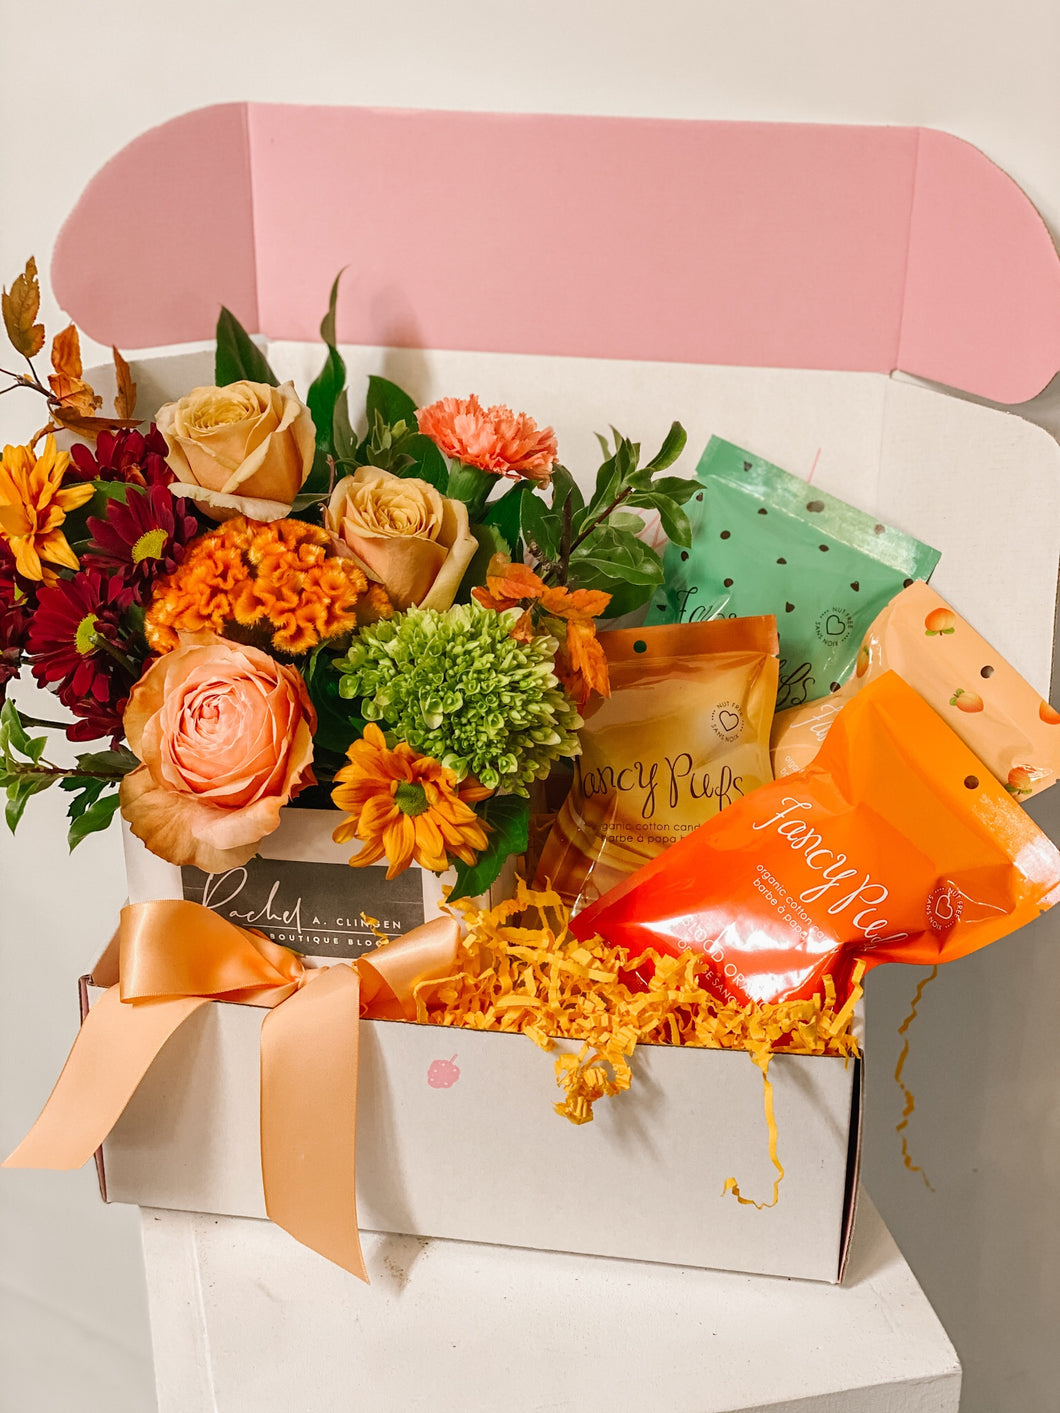 Halloween Themed Gift Box with Flowers and Cotton Candy